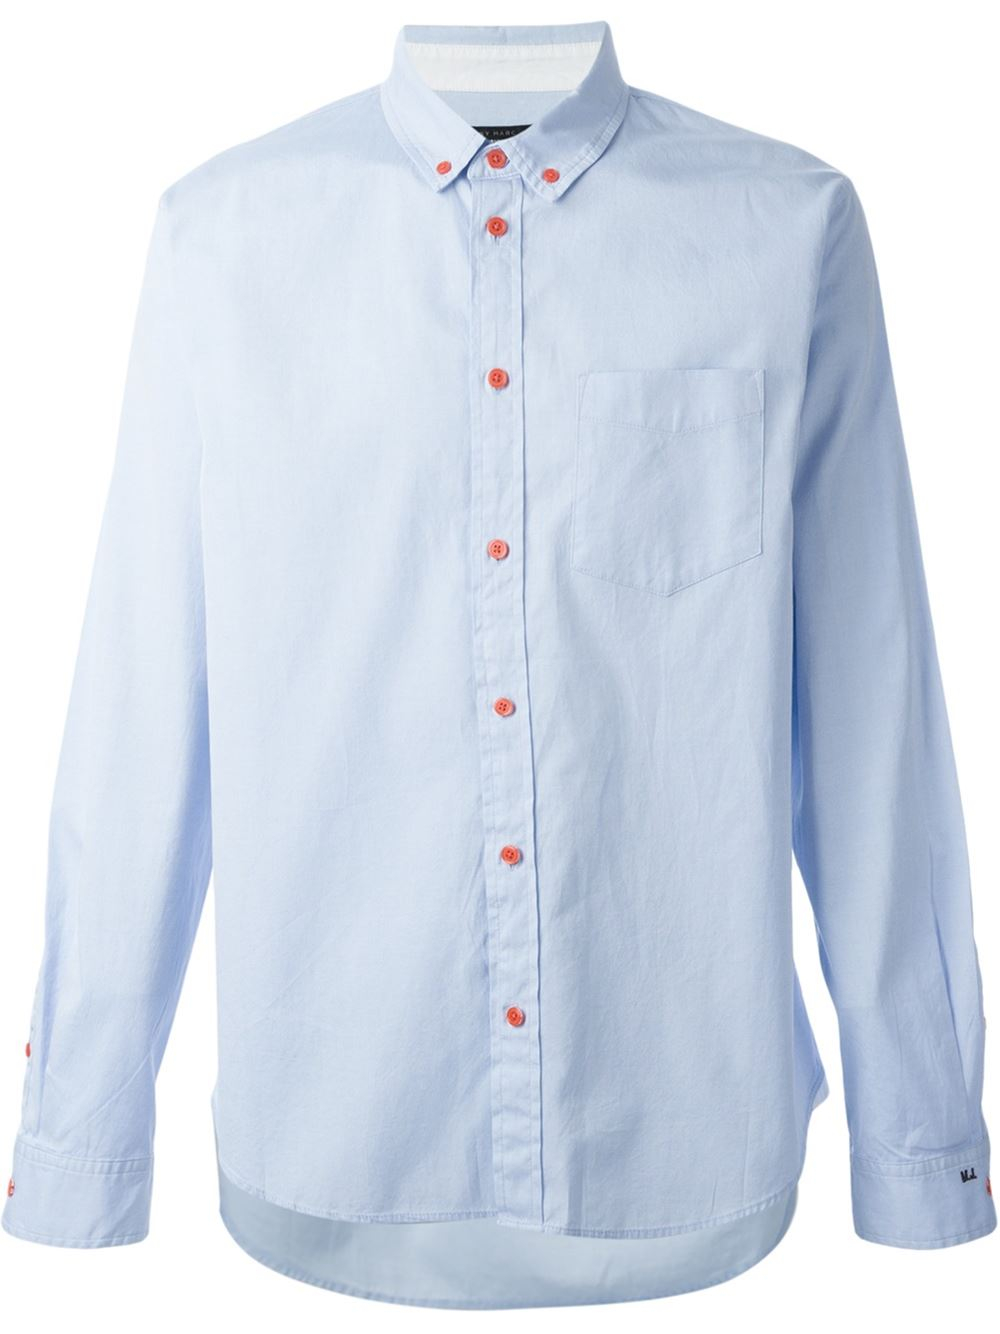 Marc by marc jacobs 39 oxford 39 shirt in blue for men lyst for Mens blue oxford shirt